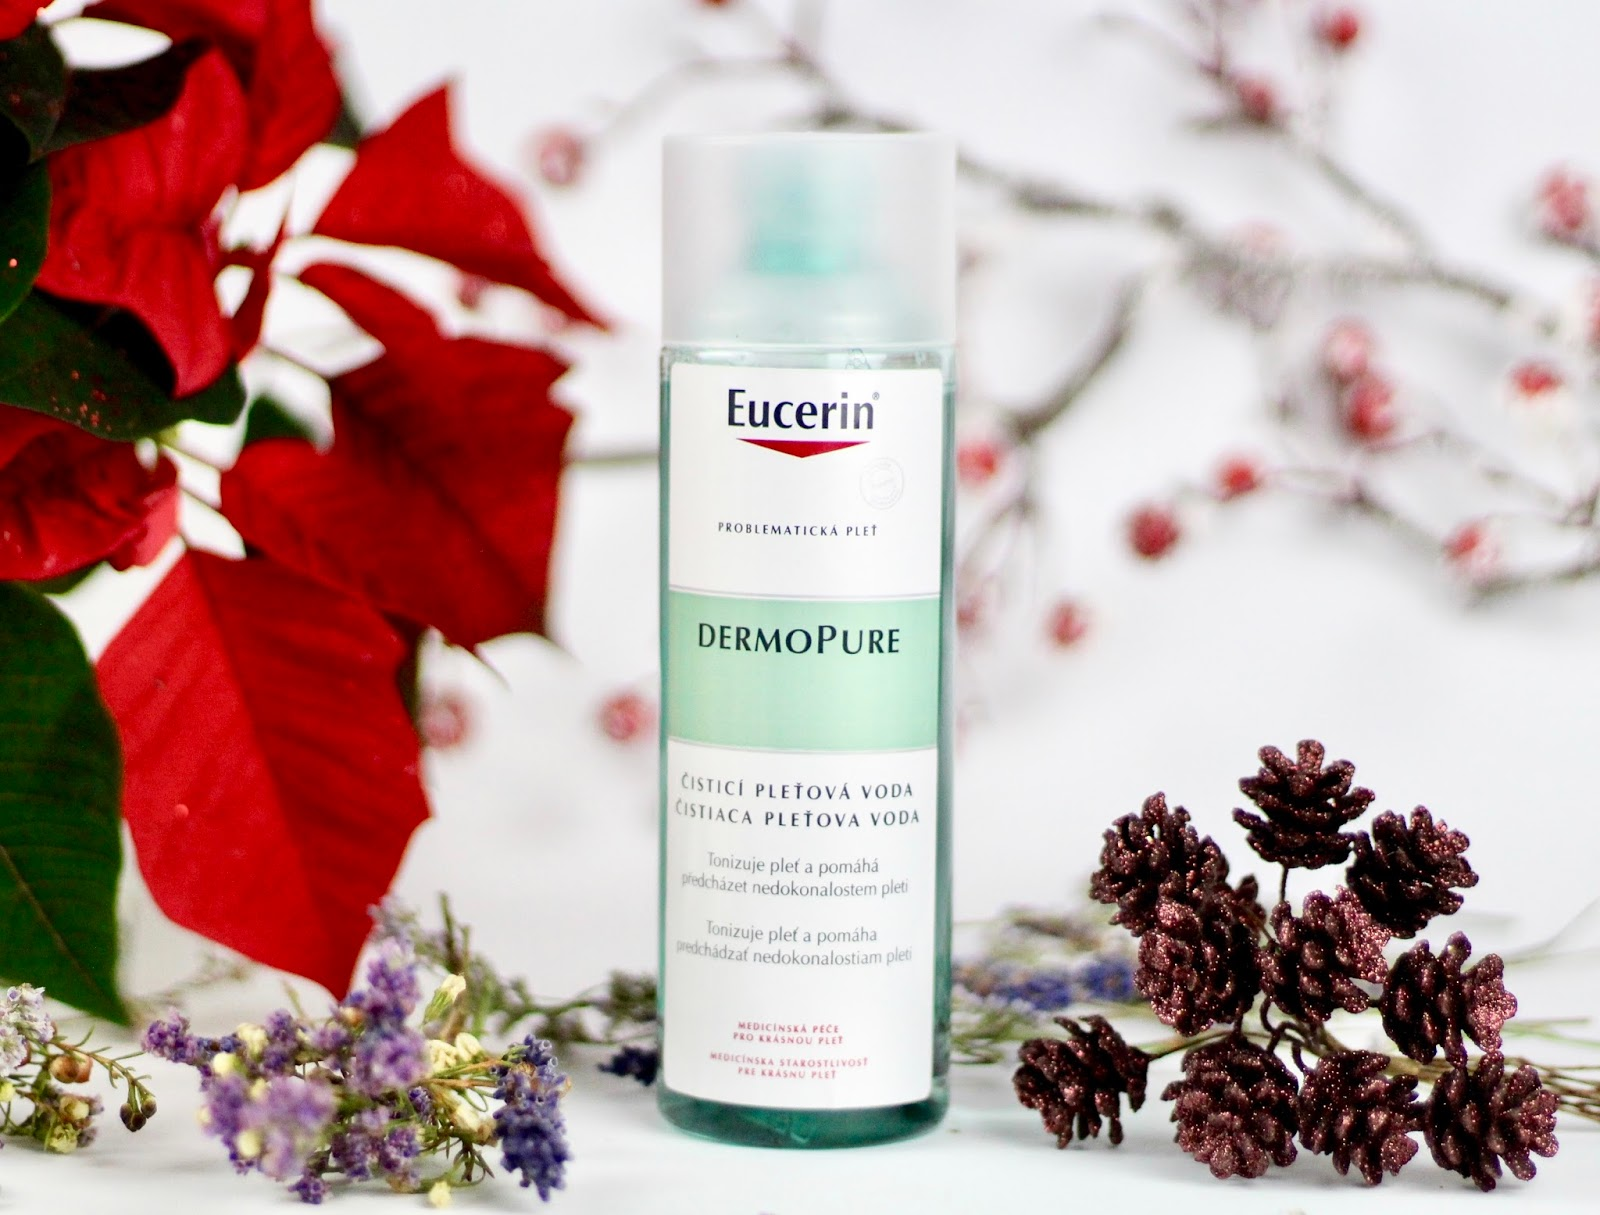 eucerin dermopure review